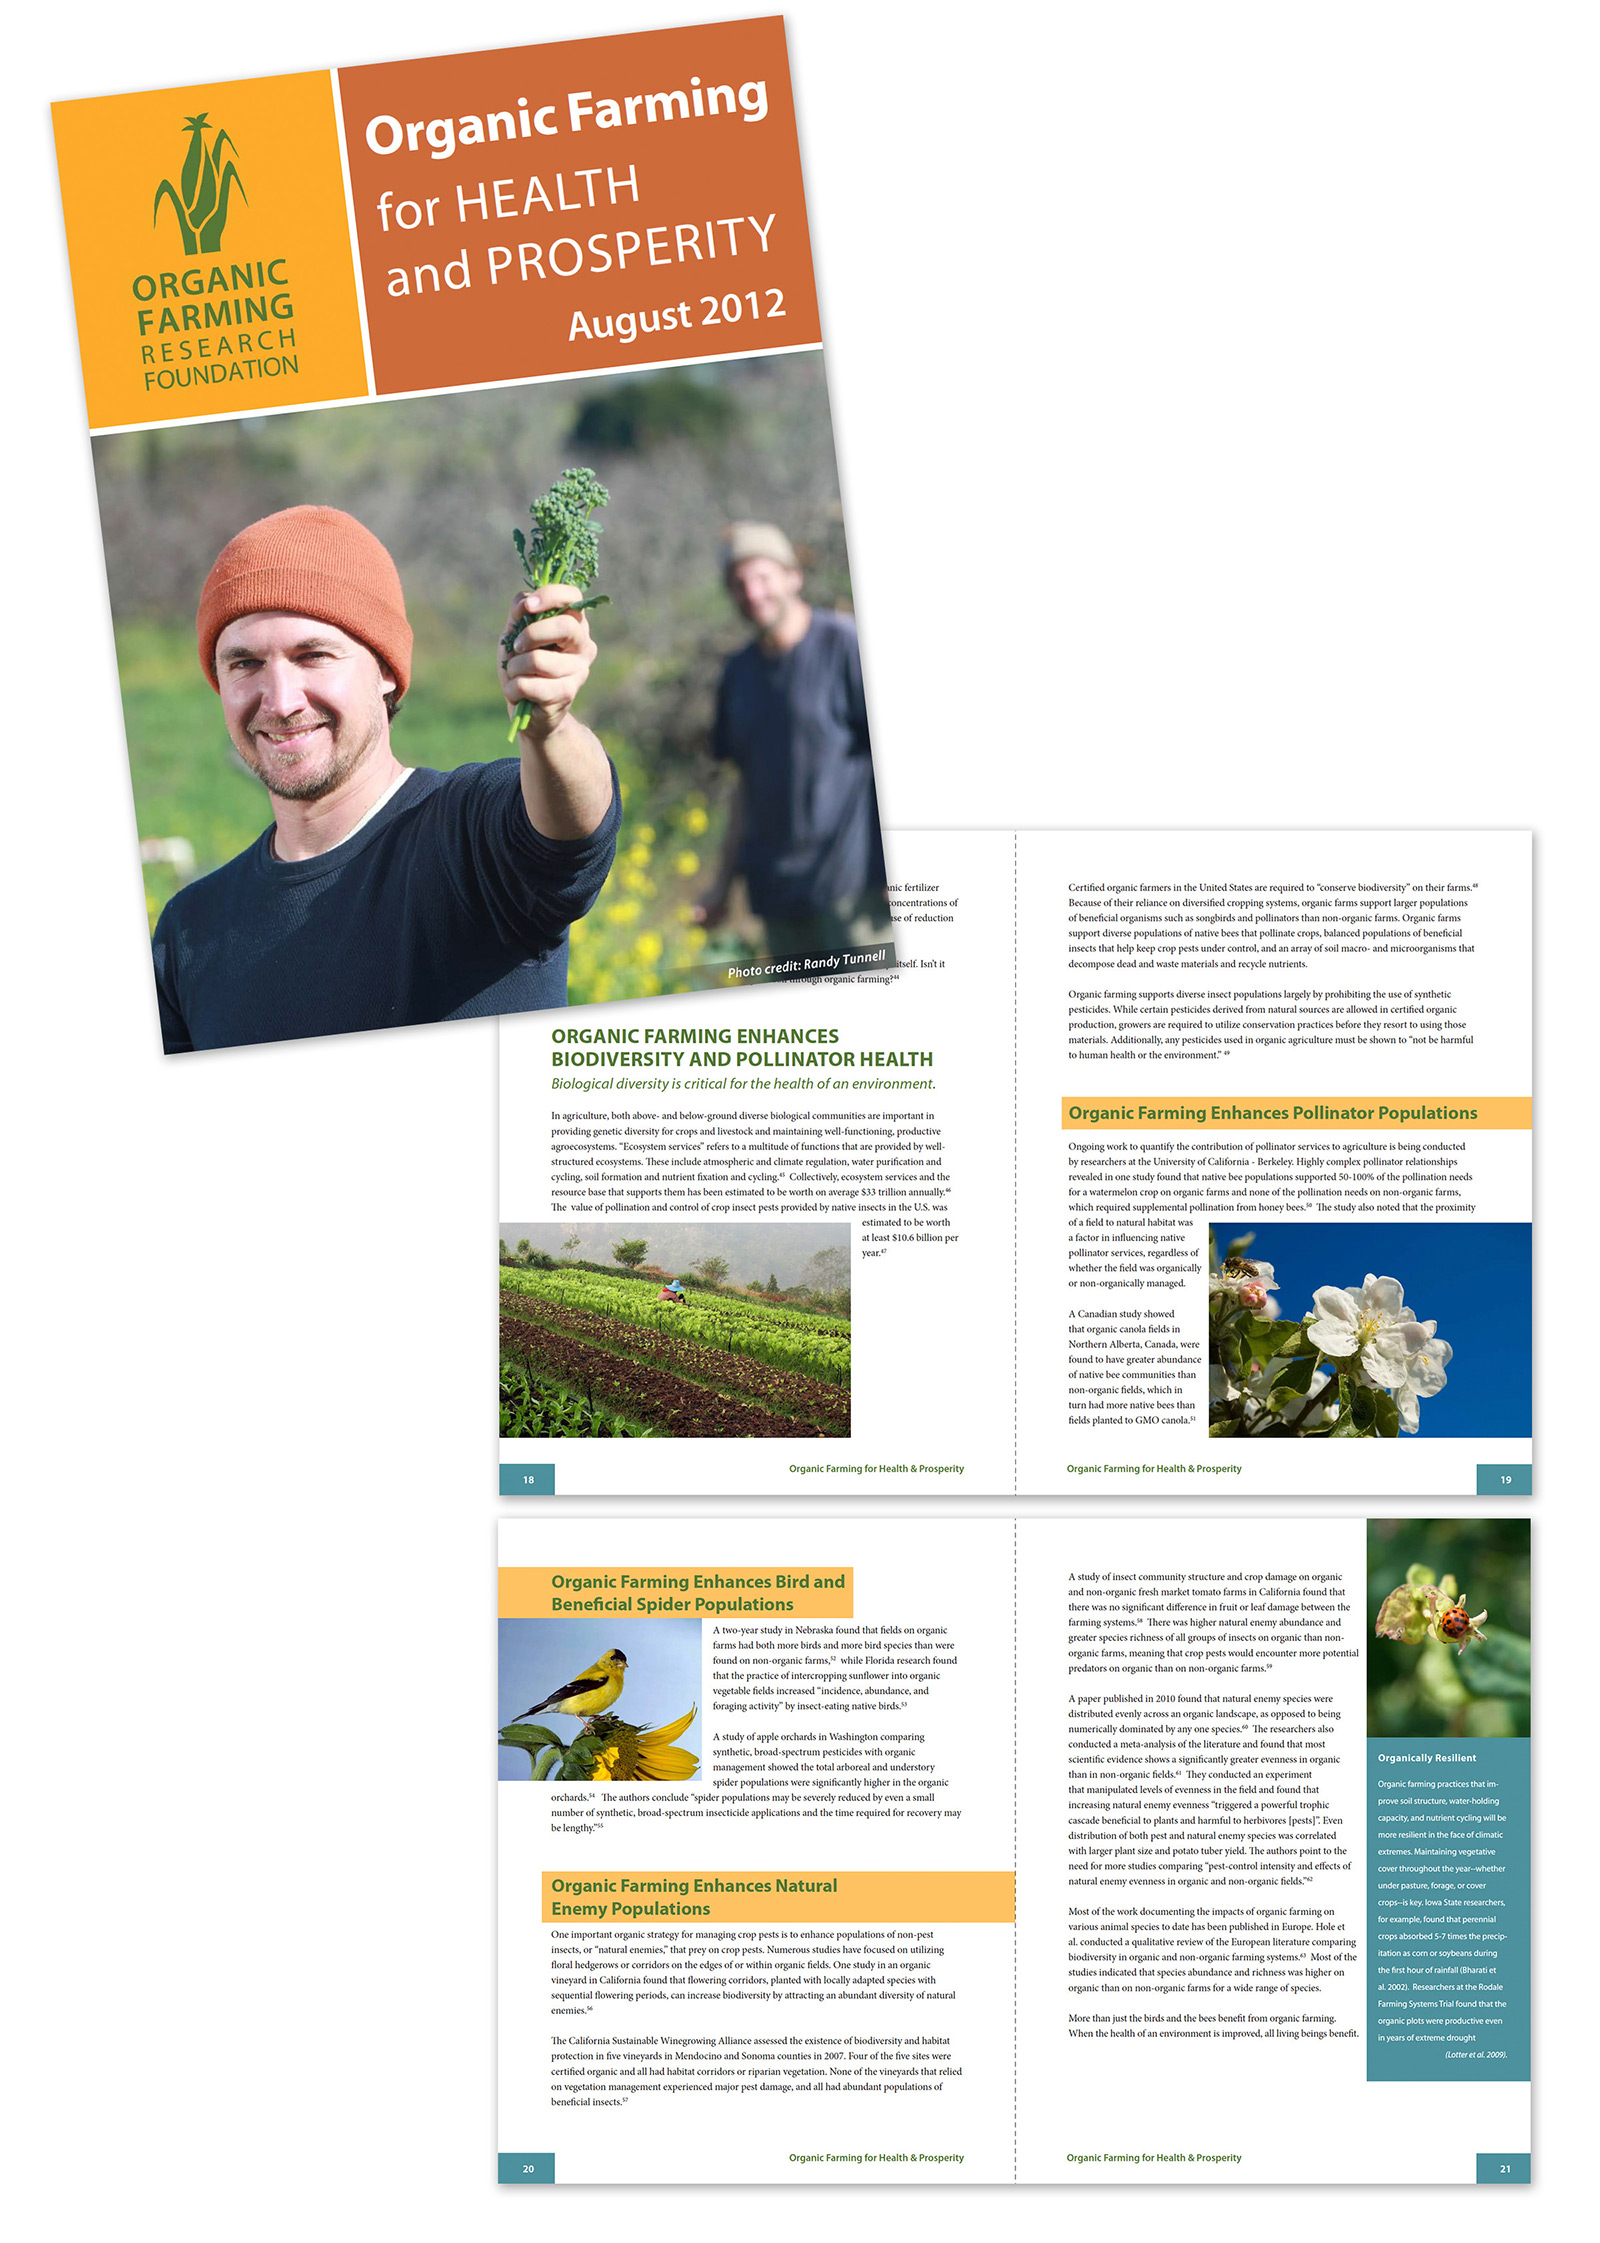 Organic Farming Research Foundation Health and Prosperity Report